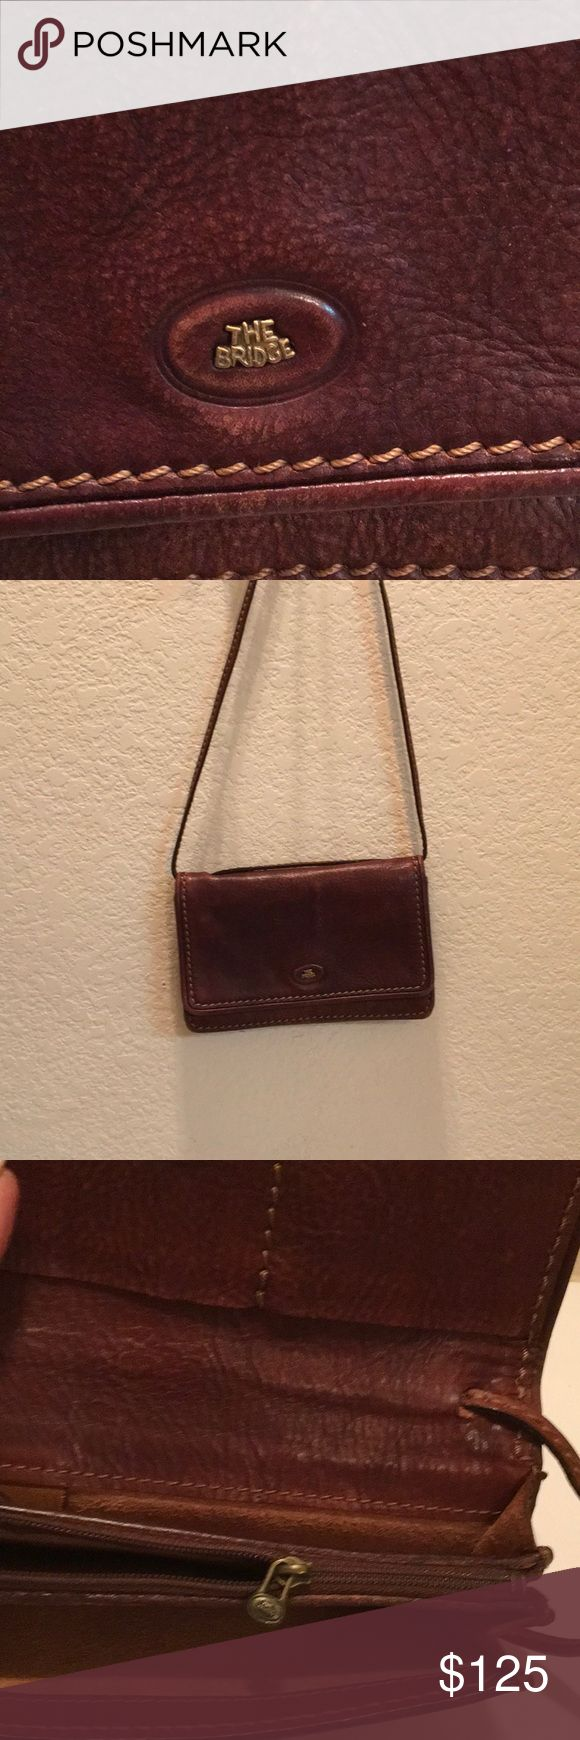 """THE BRIDGE cross body shoulder bag HOT in EUROPE I was told that European buy THE BRIDGE Bag the way AMERICAN women buy brands like BURBERRY, COACH, etc. They are sought after highly. ALL LEATHER lots of compartments zips snaps, slots. Adjustable 27 1/2"""" strap 4 1/2"""" x 7"""" x 1""""SUPER NICE THE BRIDGE Bags Crossbody Bags"""